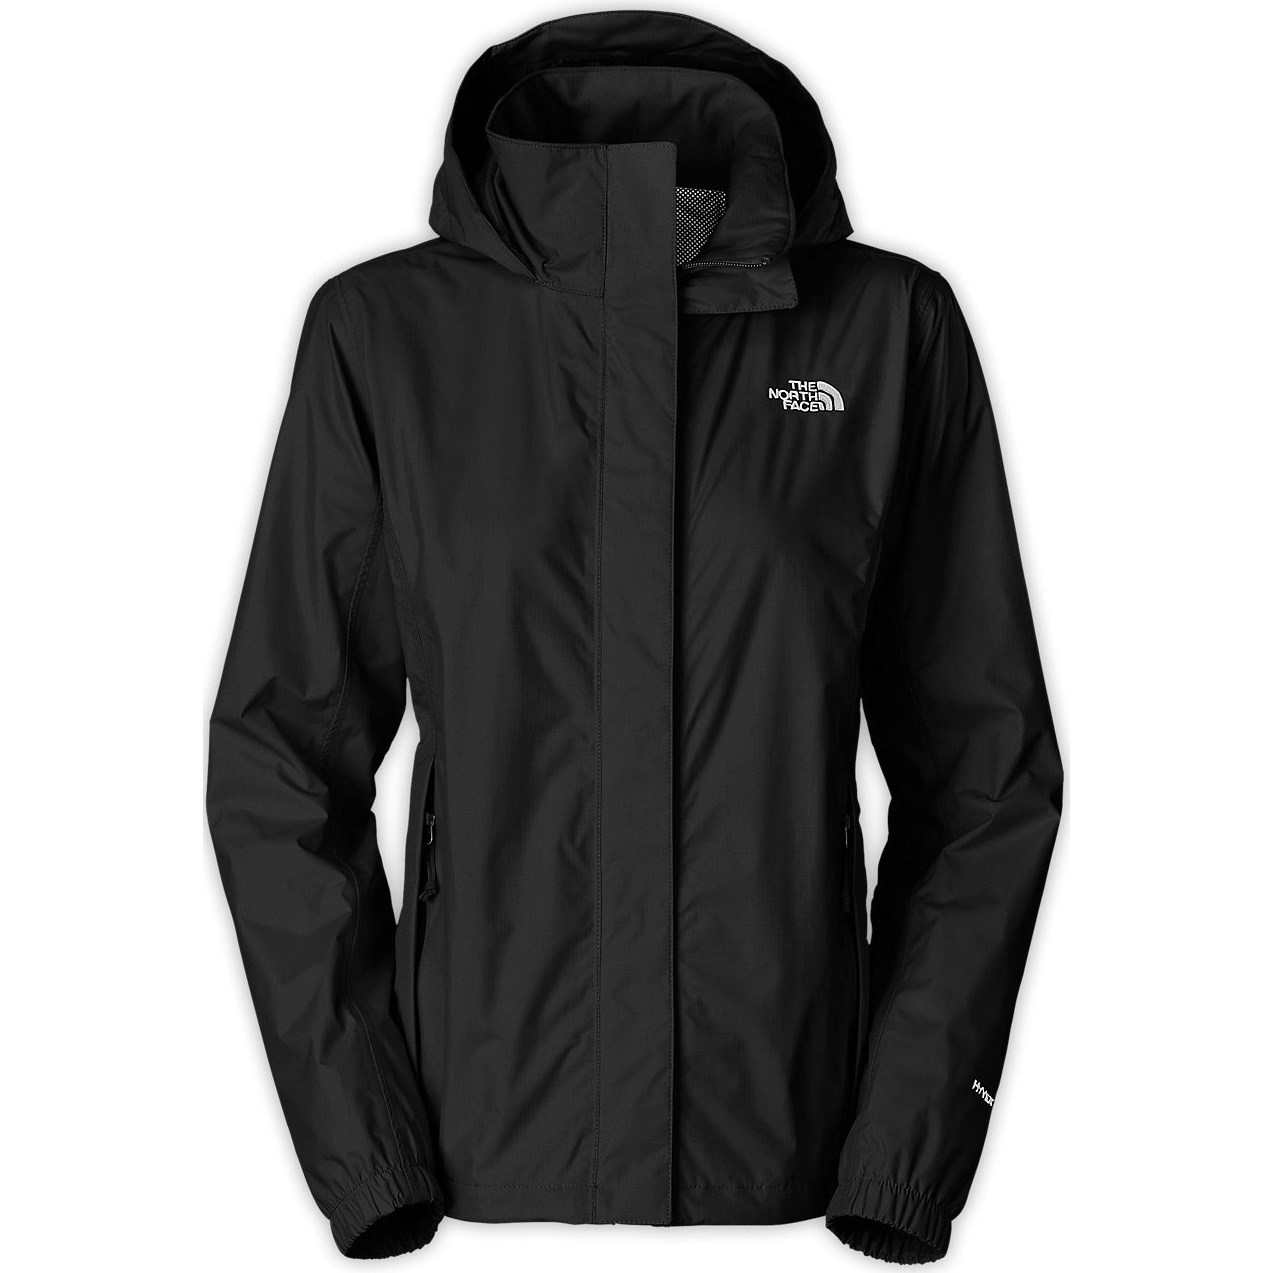 North face spring jacket